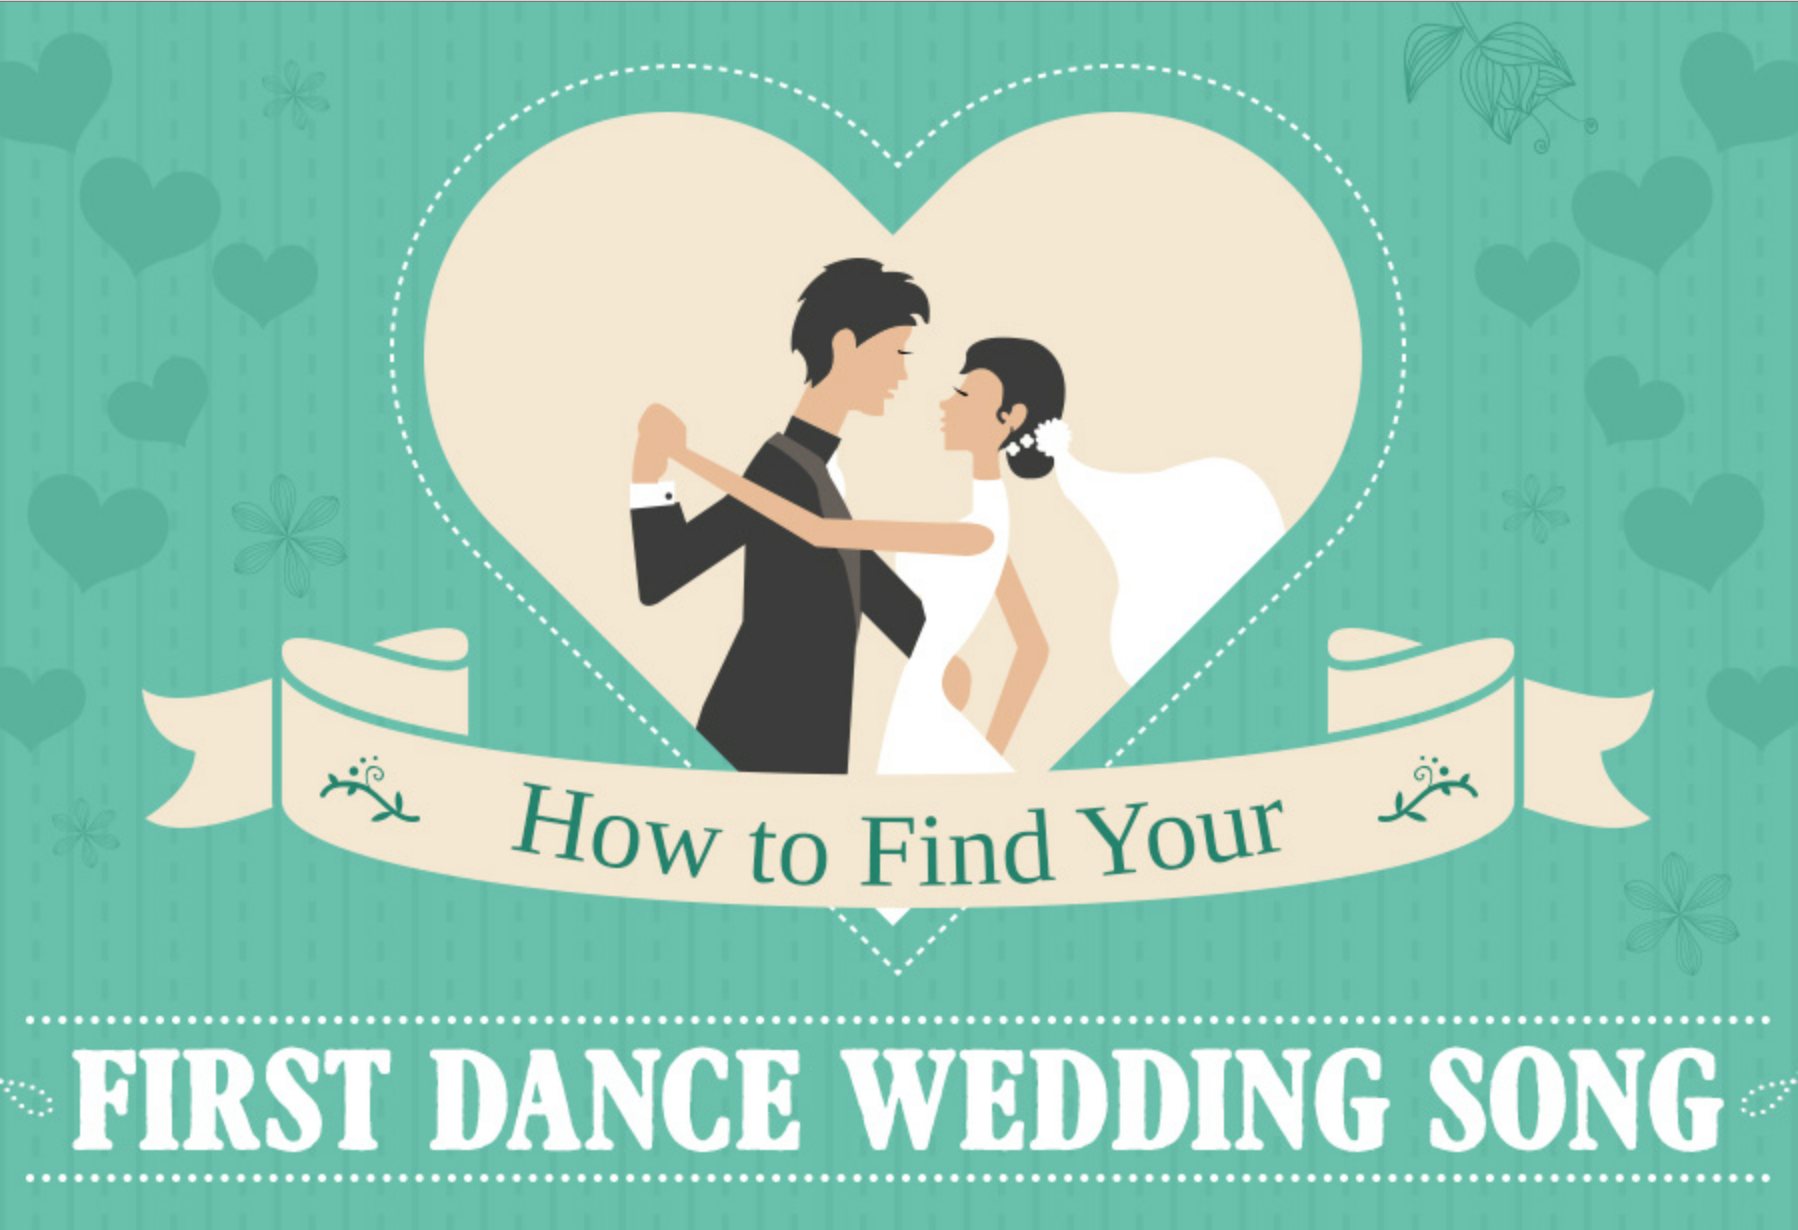 wedding first dance song infographic